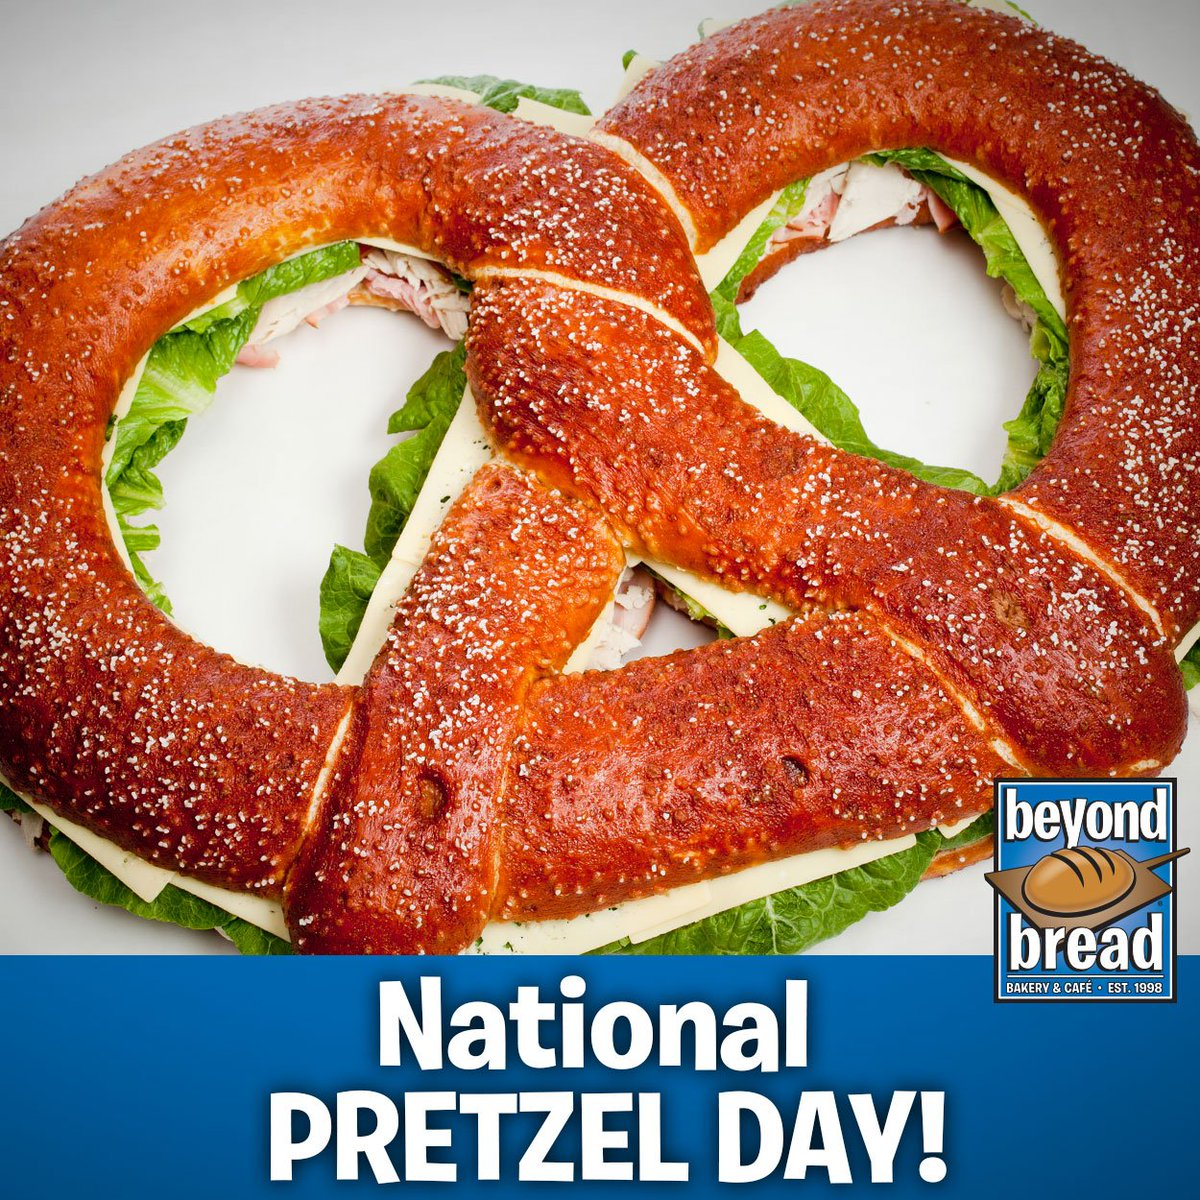 Beyond Bread On Twitter Happy NationalPretzelDay Who Else Would Make A Giant Pretzel And Put Sandwich It Only BeyondBread